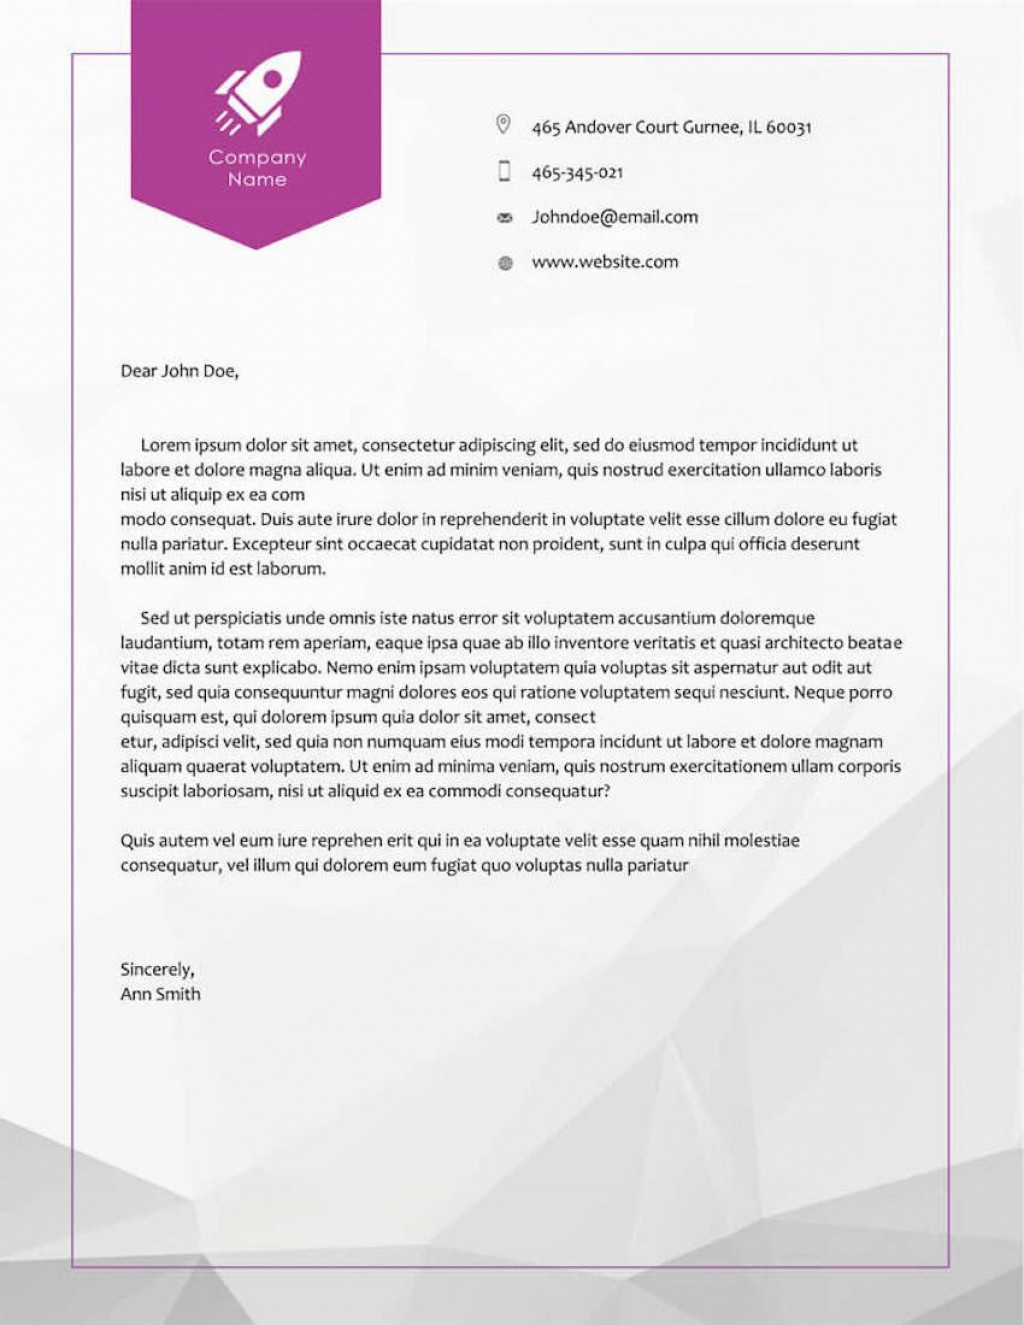 004 Unusual Letterhead Template Free Download Doc Example  Company FormatLarge